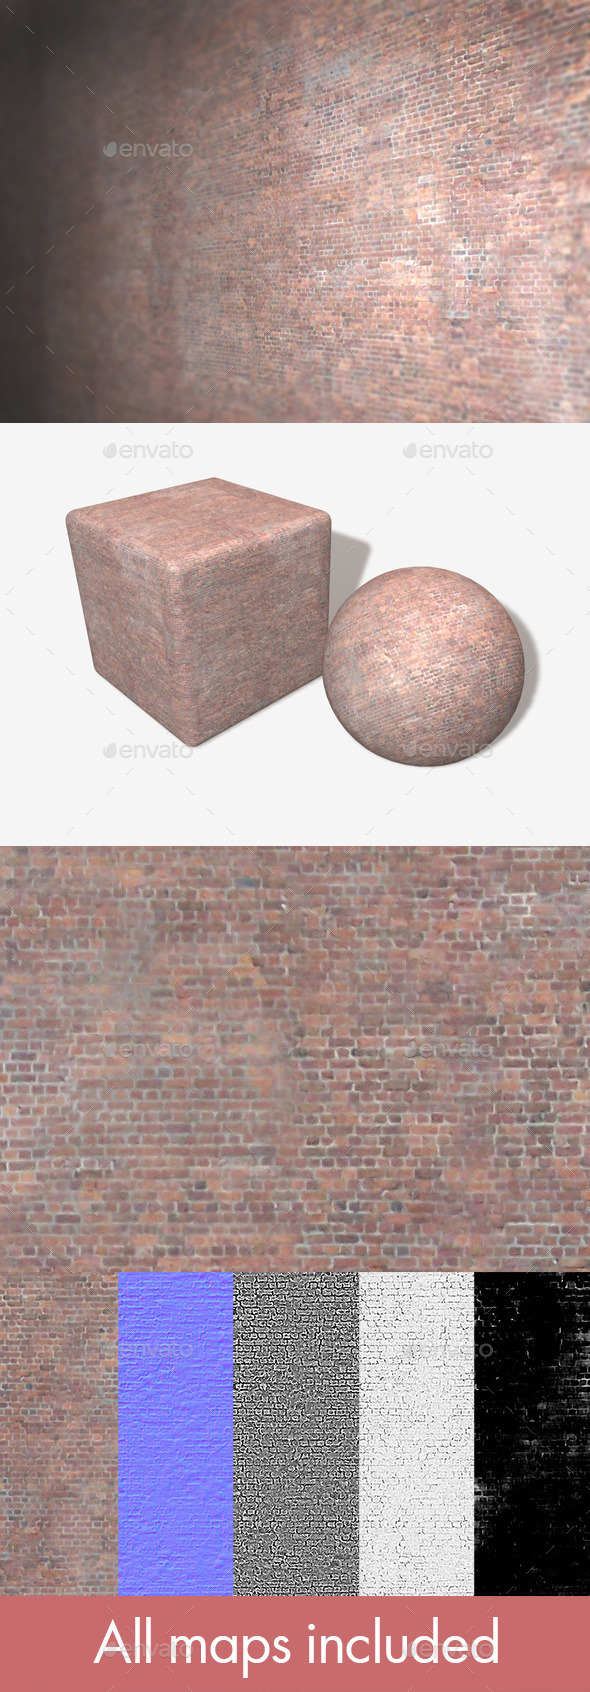 3DOcean Tiny Brick Building Seamless Texture 10700372